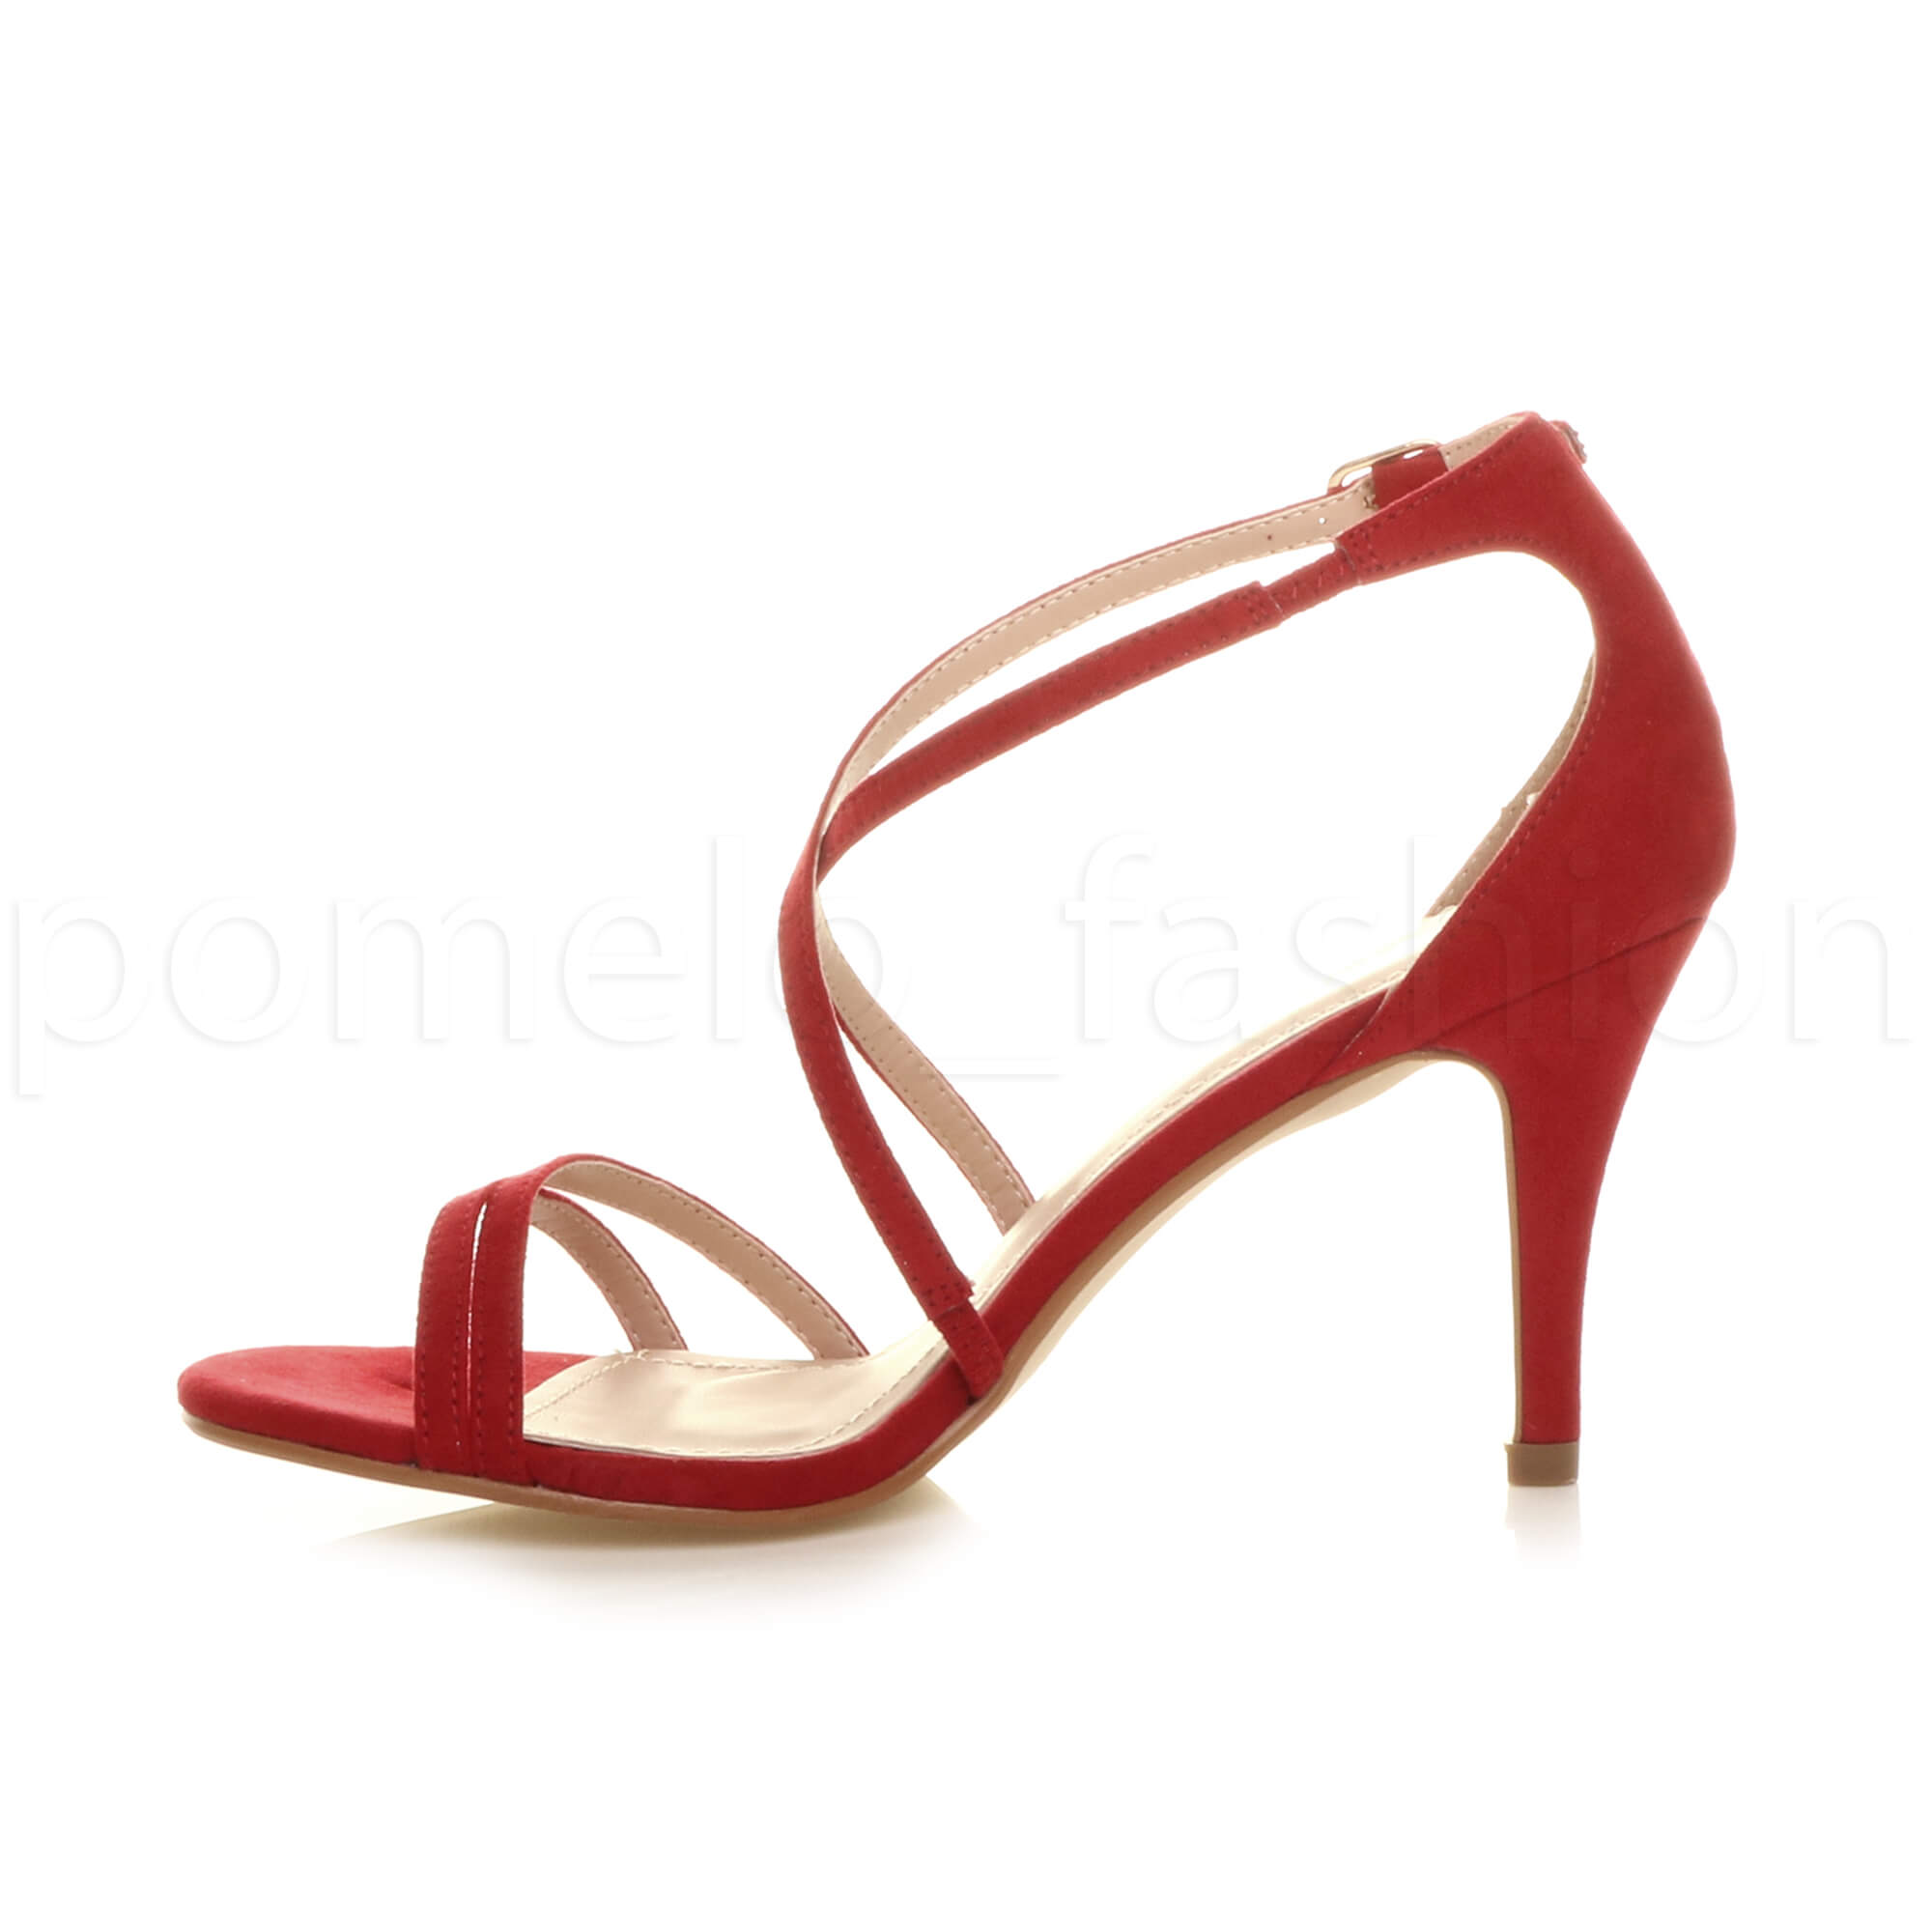 696a9b53edf Womens Ladies Mid High Heel Strappy Crossover Wedding Prom Sandals Shoes  Size UK 4 / EU 37 / US 6 Red Suede